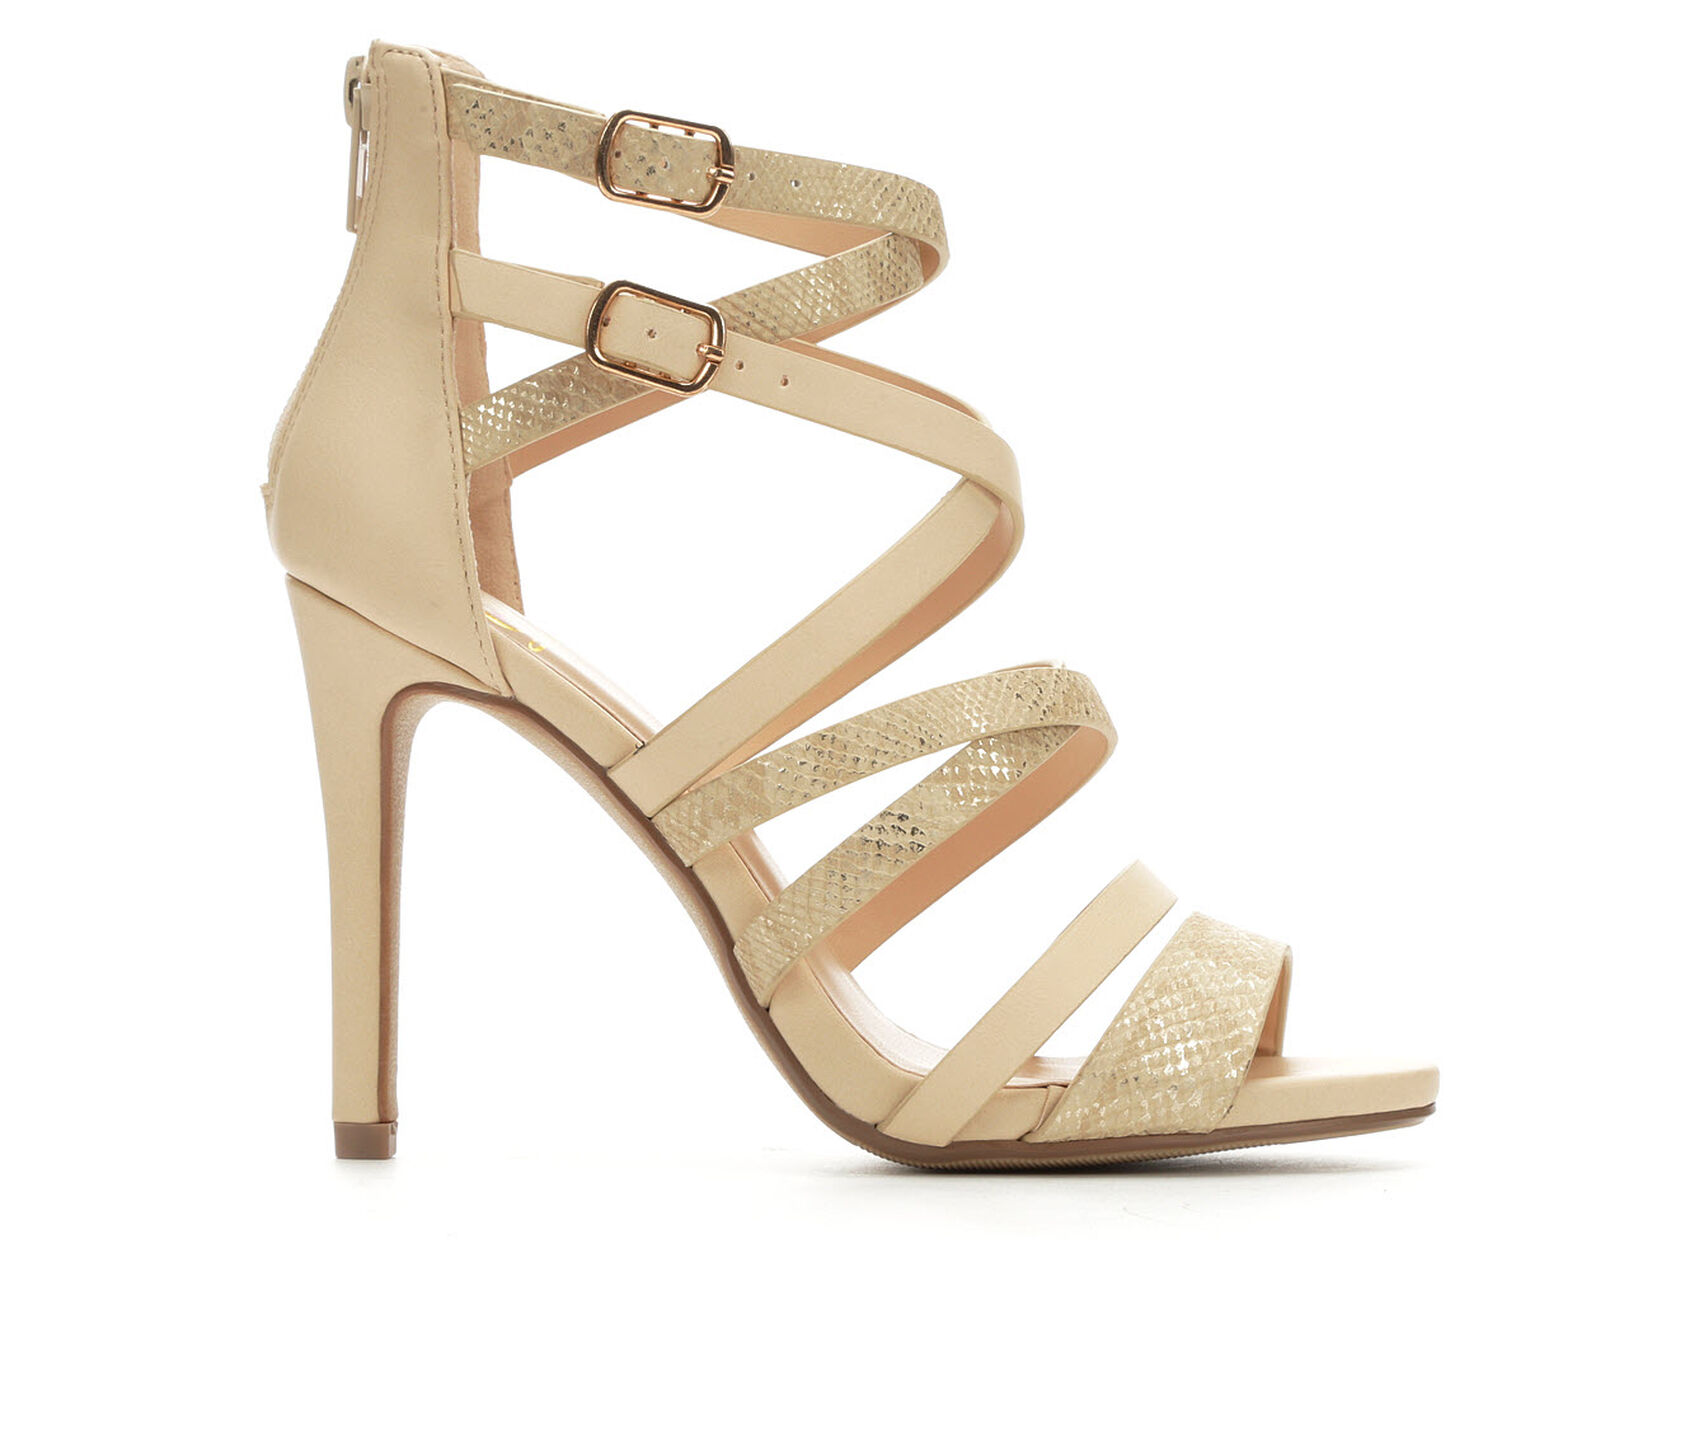 f195bde104949 Women's Delicious Cage Strappy Heeled Sandals